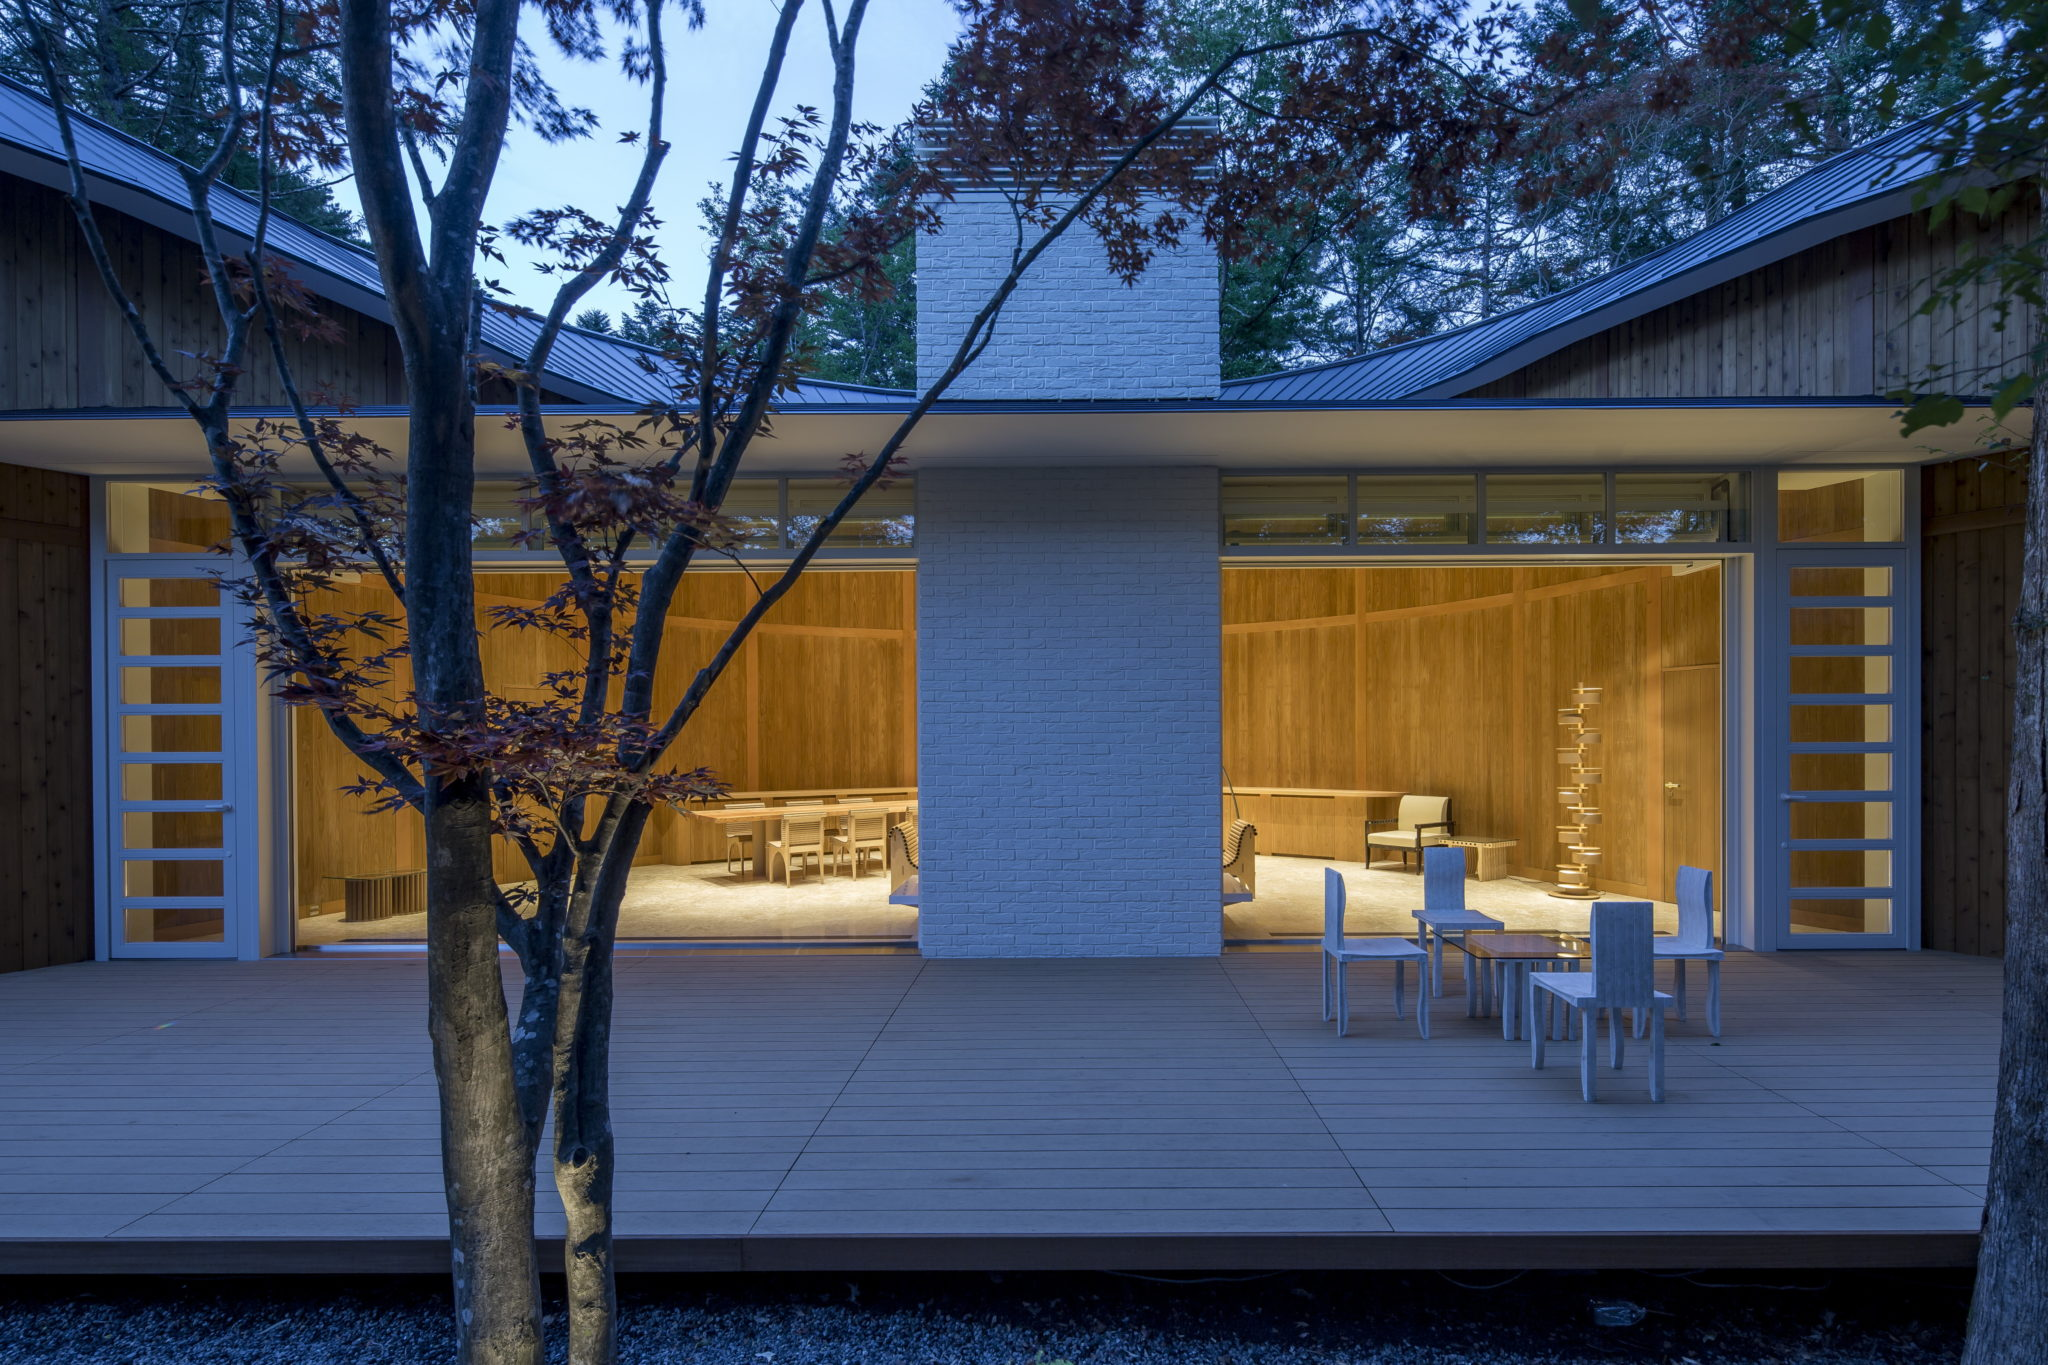 Shishi-Iwa house, designed by Pritzker Prize winning Japanese architect Shigeru Ban, in Karuizawa, Japan.